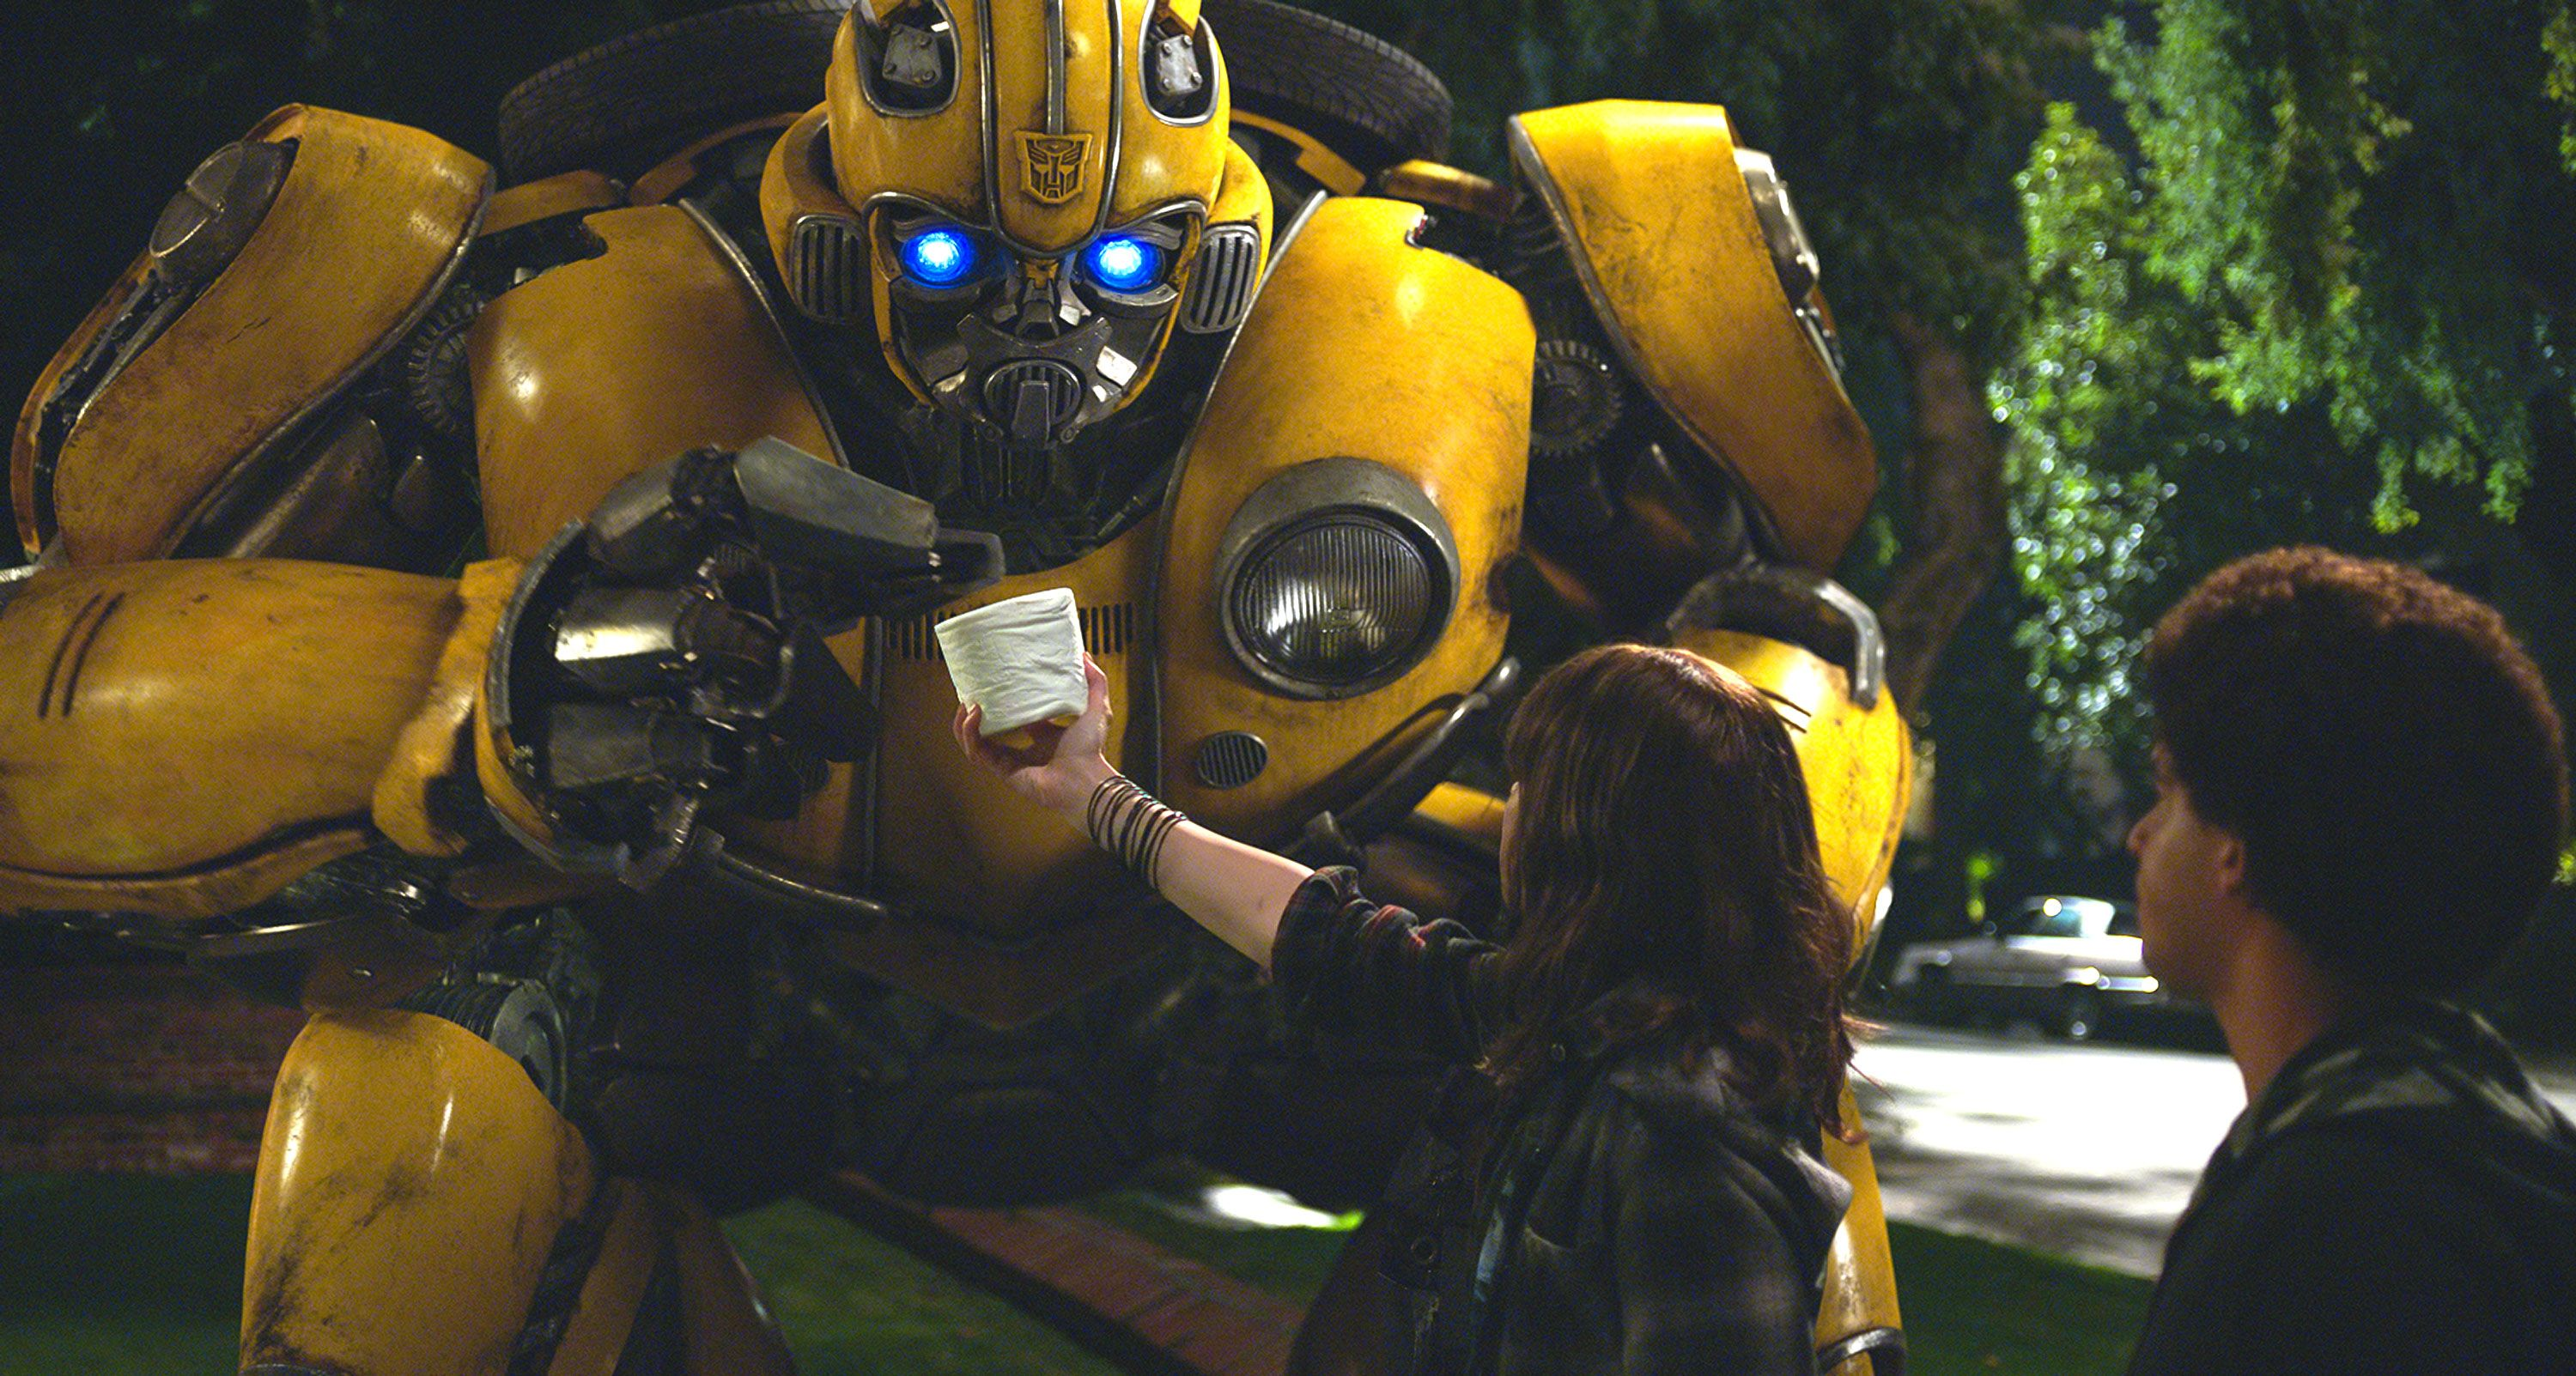 Transformers Fall Of Cybertron 4k Wallpaper Bumblebee 2 Cast Bumblebee 2 Release Date